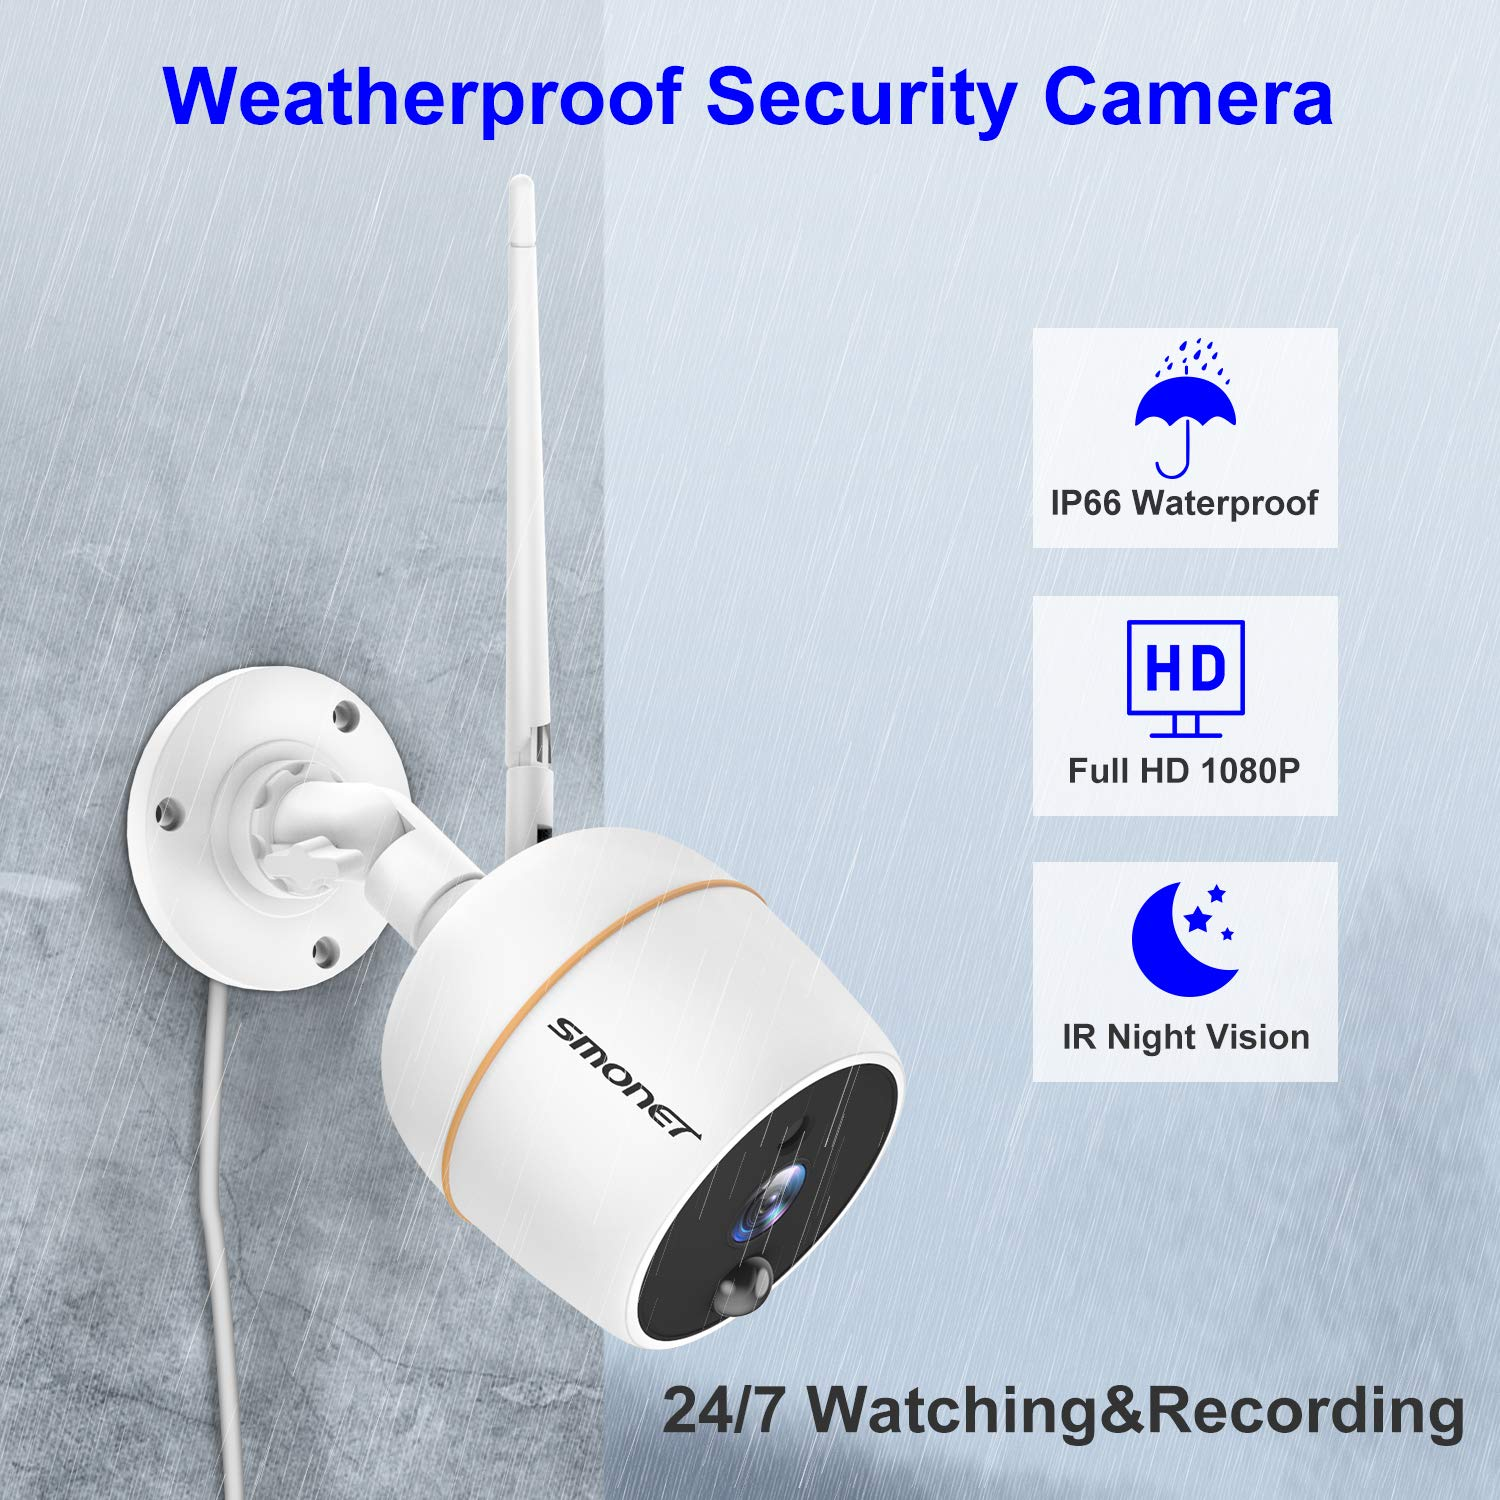 With 2PCS 1080P WiFi Outdoor Security Camera,Two-Way Audio,PIR Motion Detection,Easy Remote View 【PLUG/&PLAY】4CH Wireless Security Camera System,SMONET 7 Touchscreen NVR Monitor 32G TF Card Included